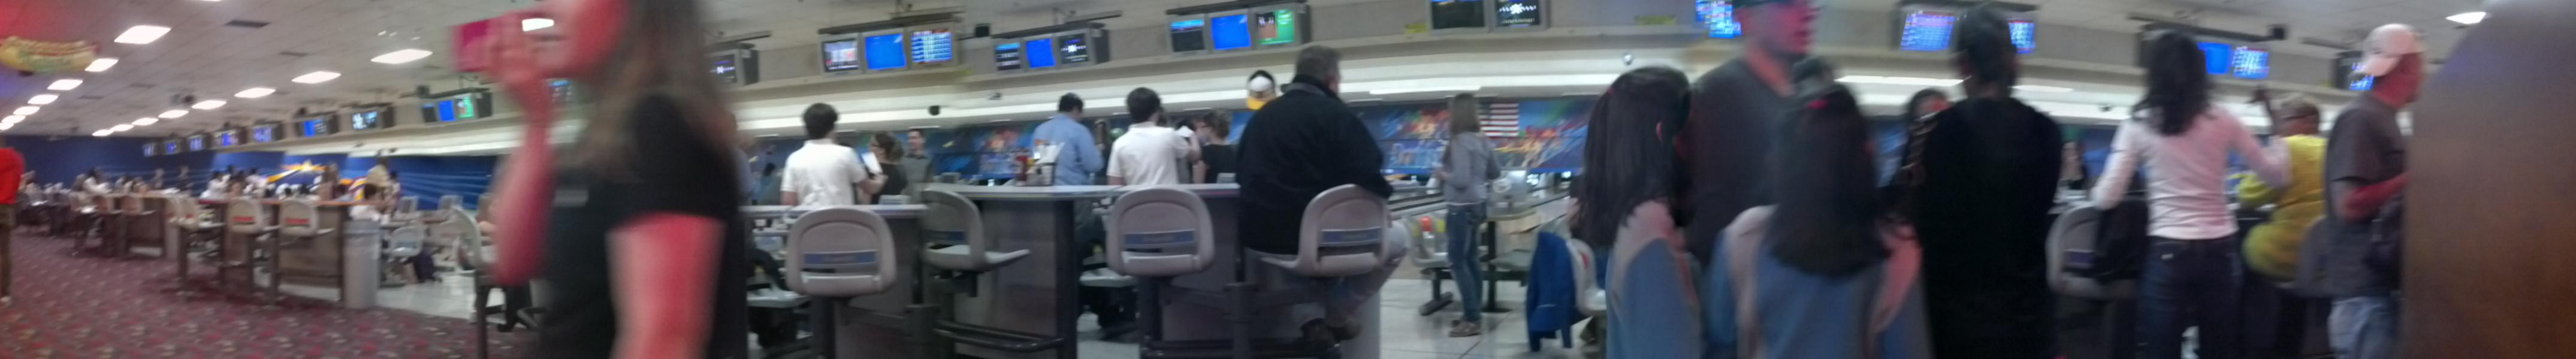 Bowling Alley Panoramic Photo